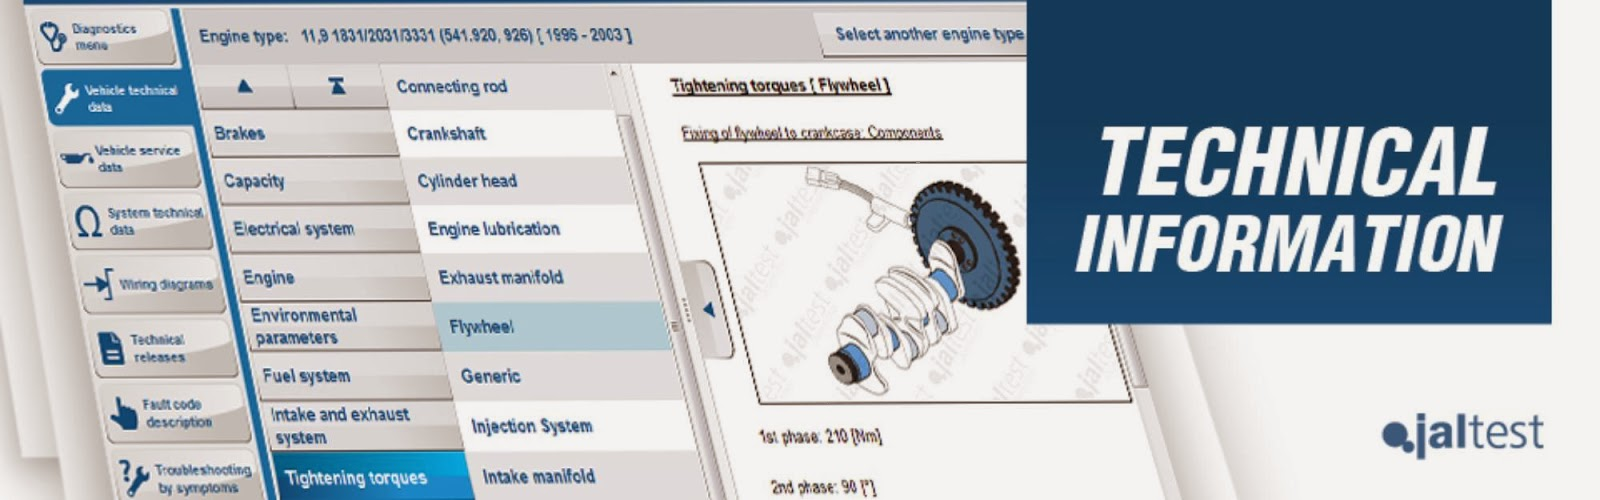 Jaltest Info Software Technical Data Or Encyclopedia For Comercial Haldex Abs Trailer Wiring Diagrams And Connections Including Ebs Edc Transmission Retarder Etc Descriptions Of Components Test